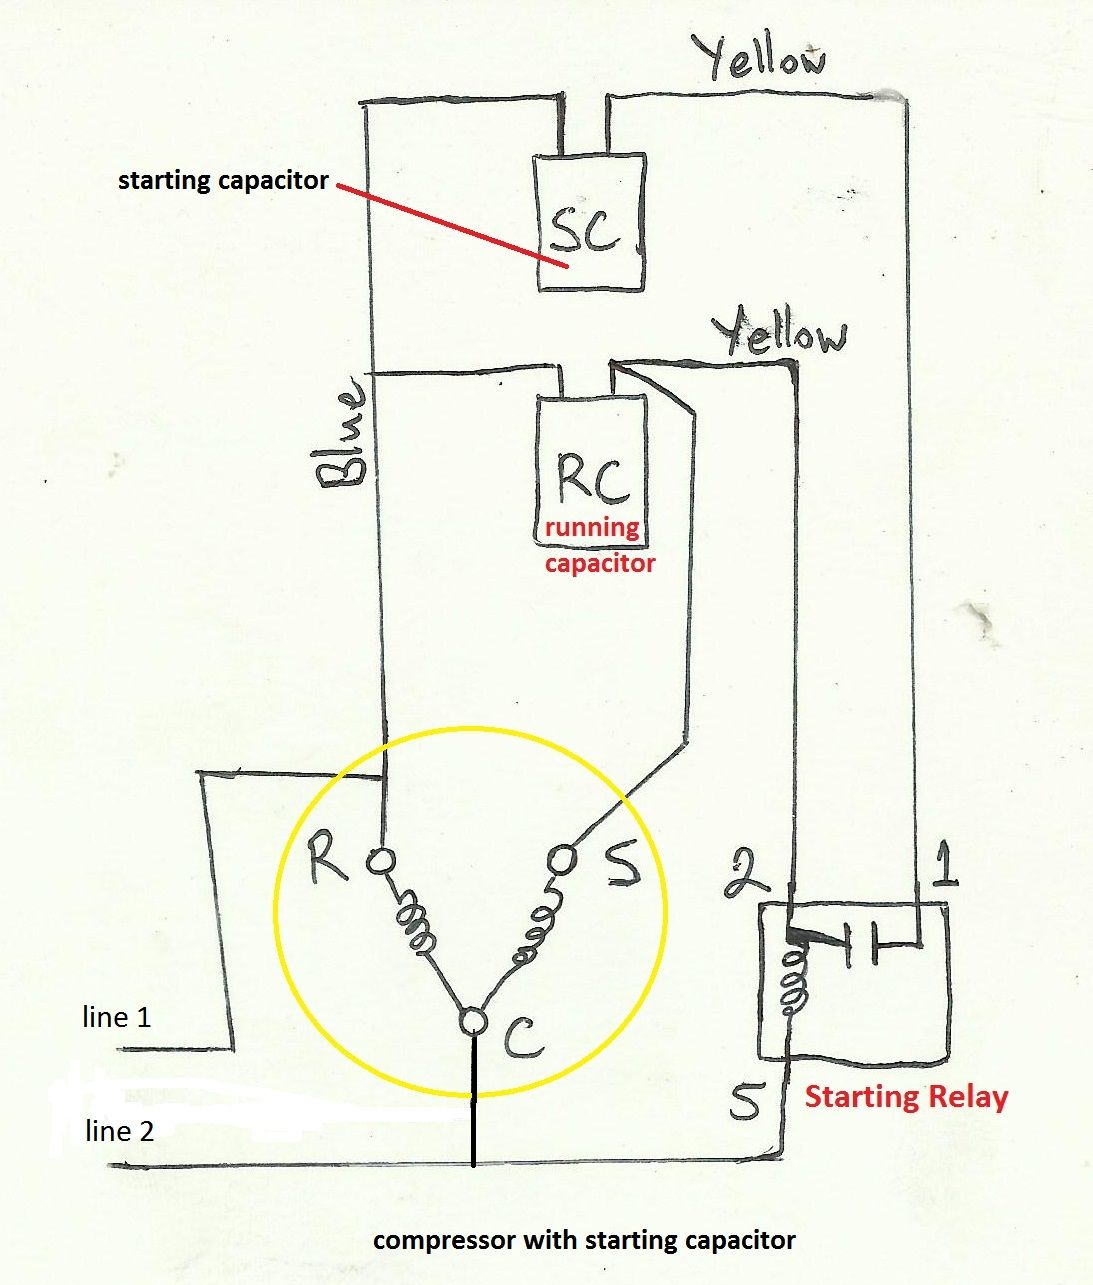 ac motor run capacitor wiring diagram of ceiling fan with regulator air compressor before you call a